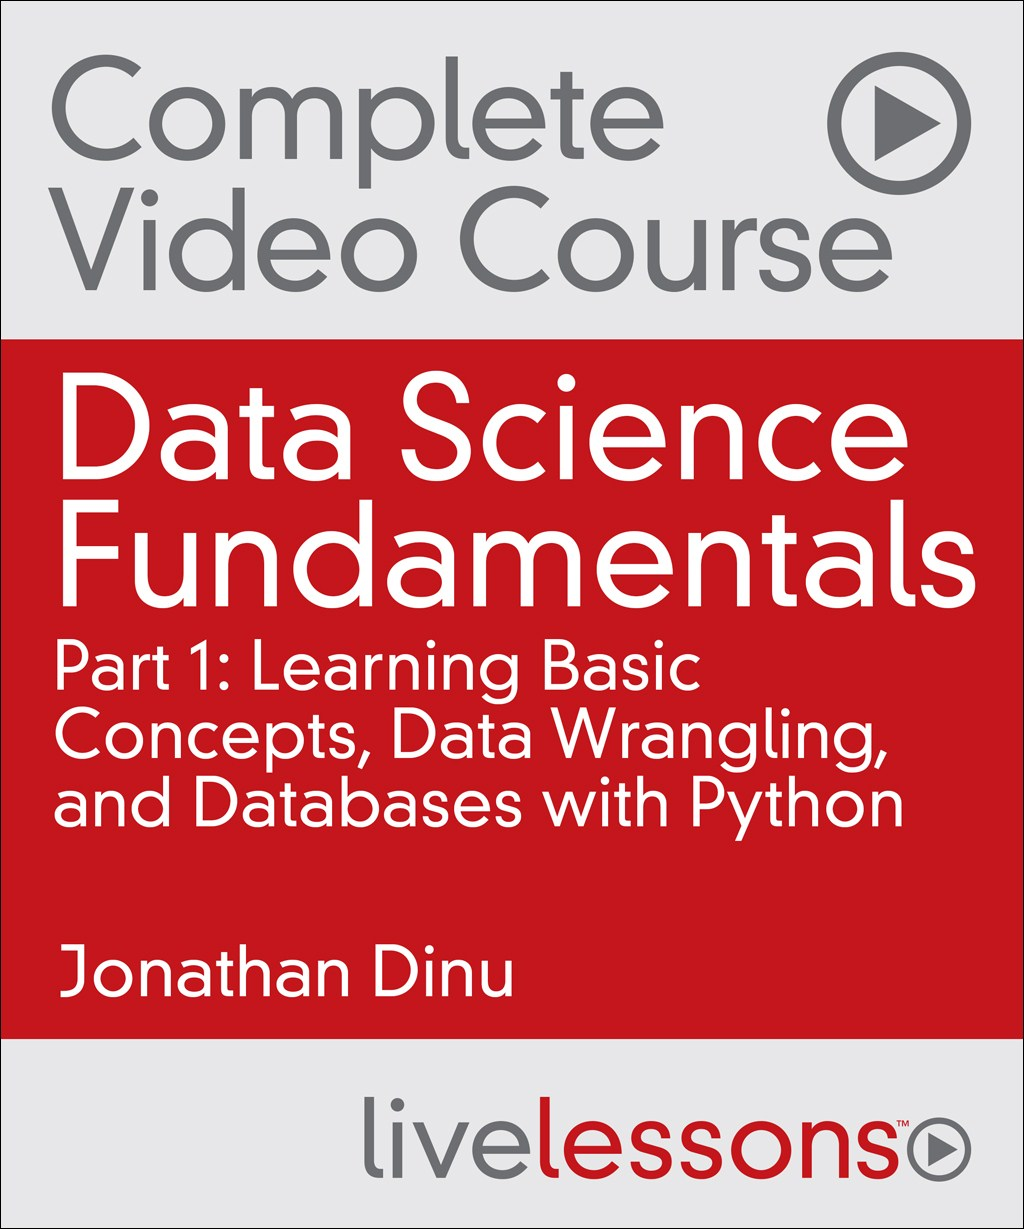 Data Science Fundamentals Part 1 Complete Video Course